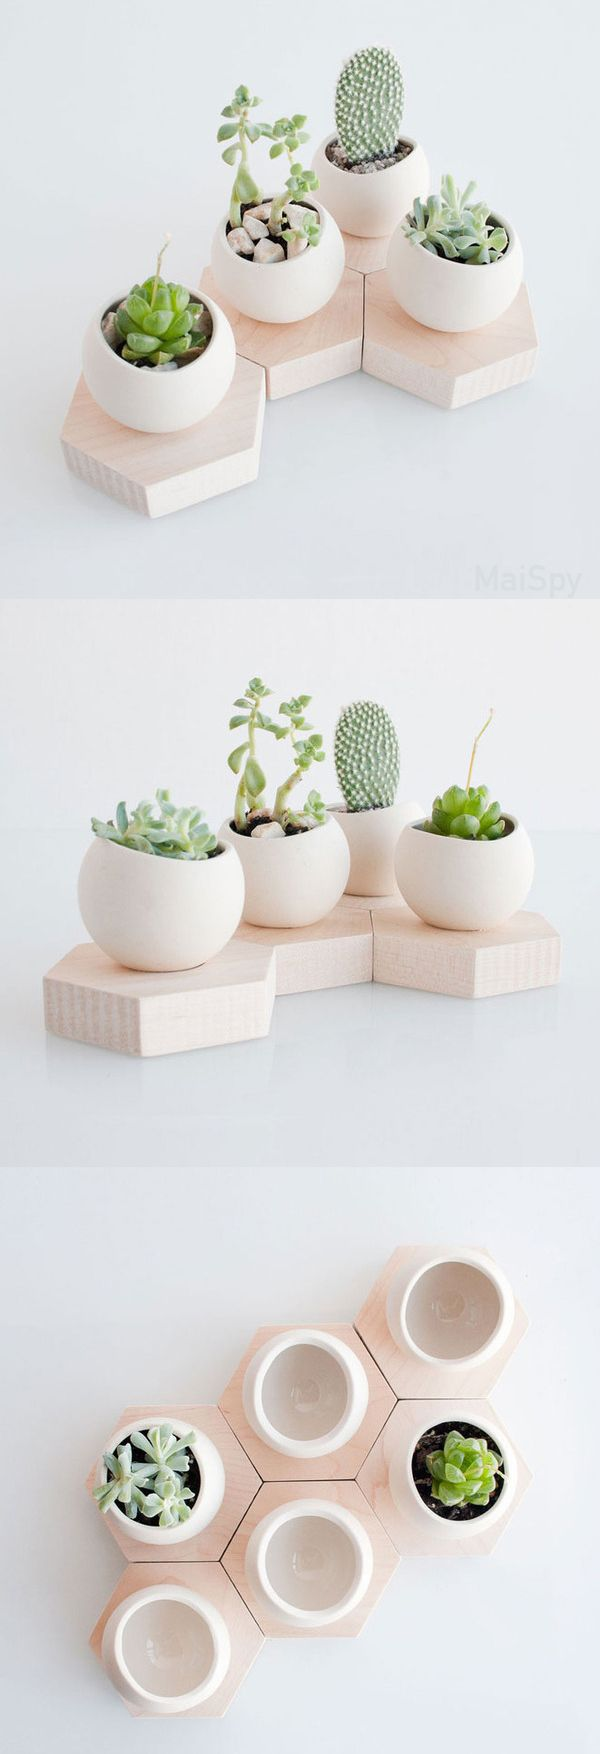 Hexagon Modular Planters